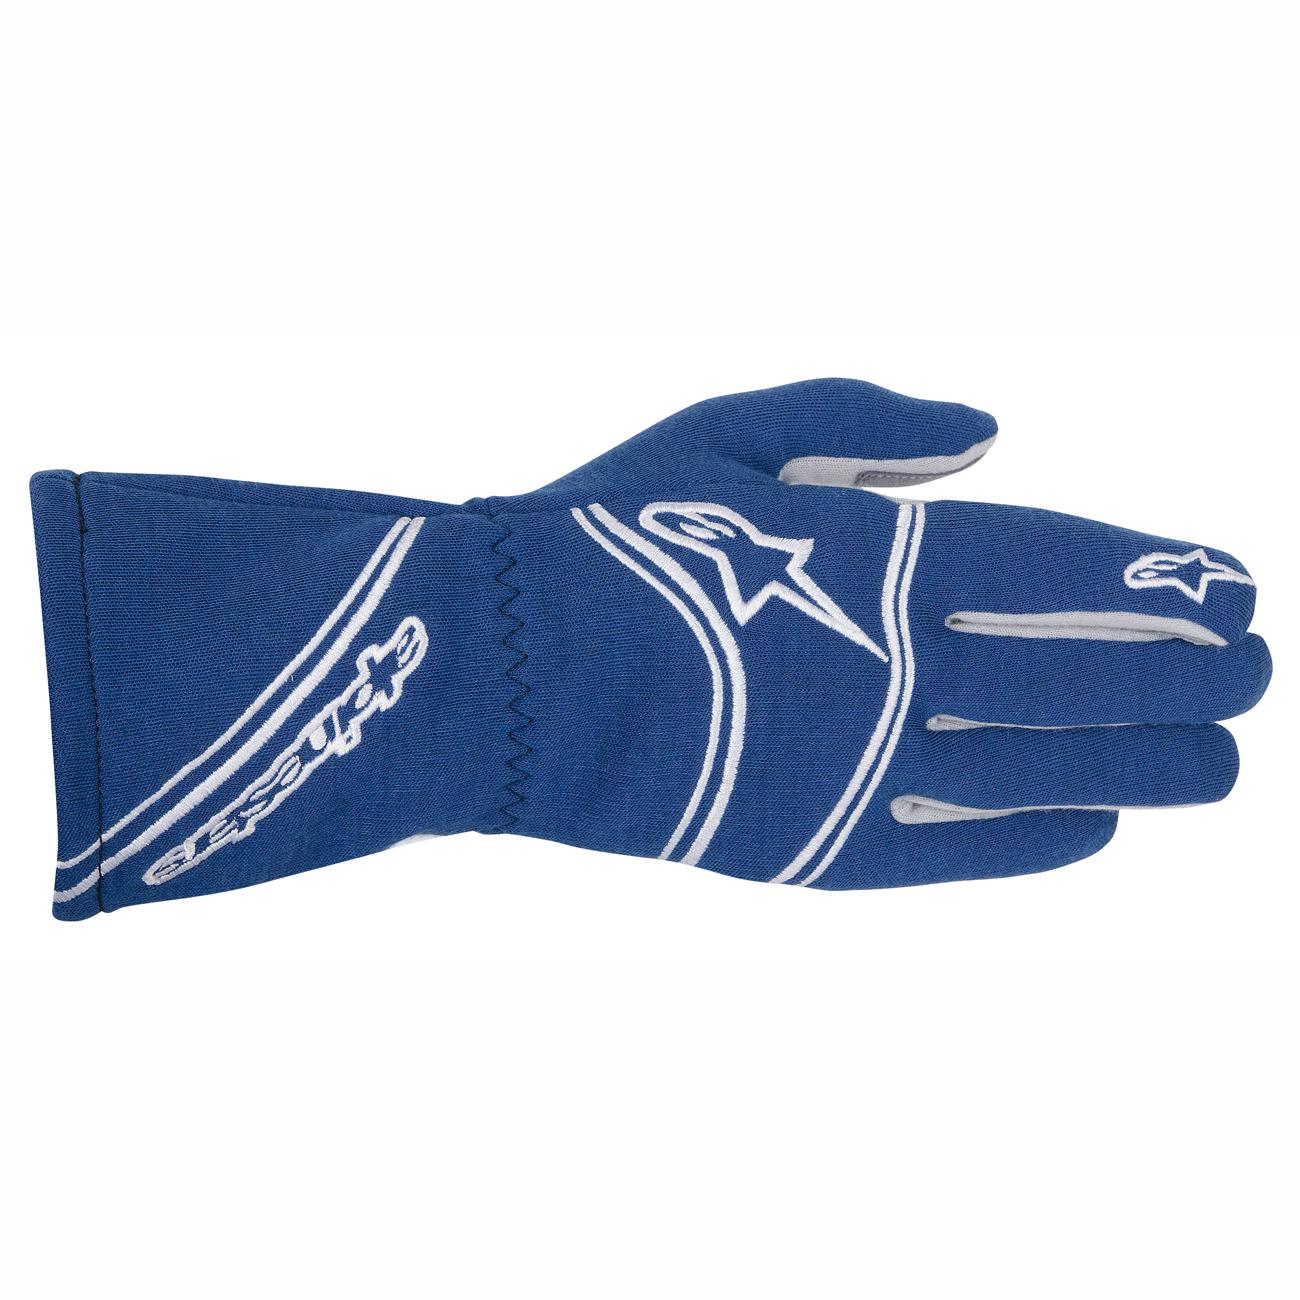 Alpinestars Tech 1-Start Nomex Race Gloves in Blue